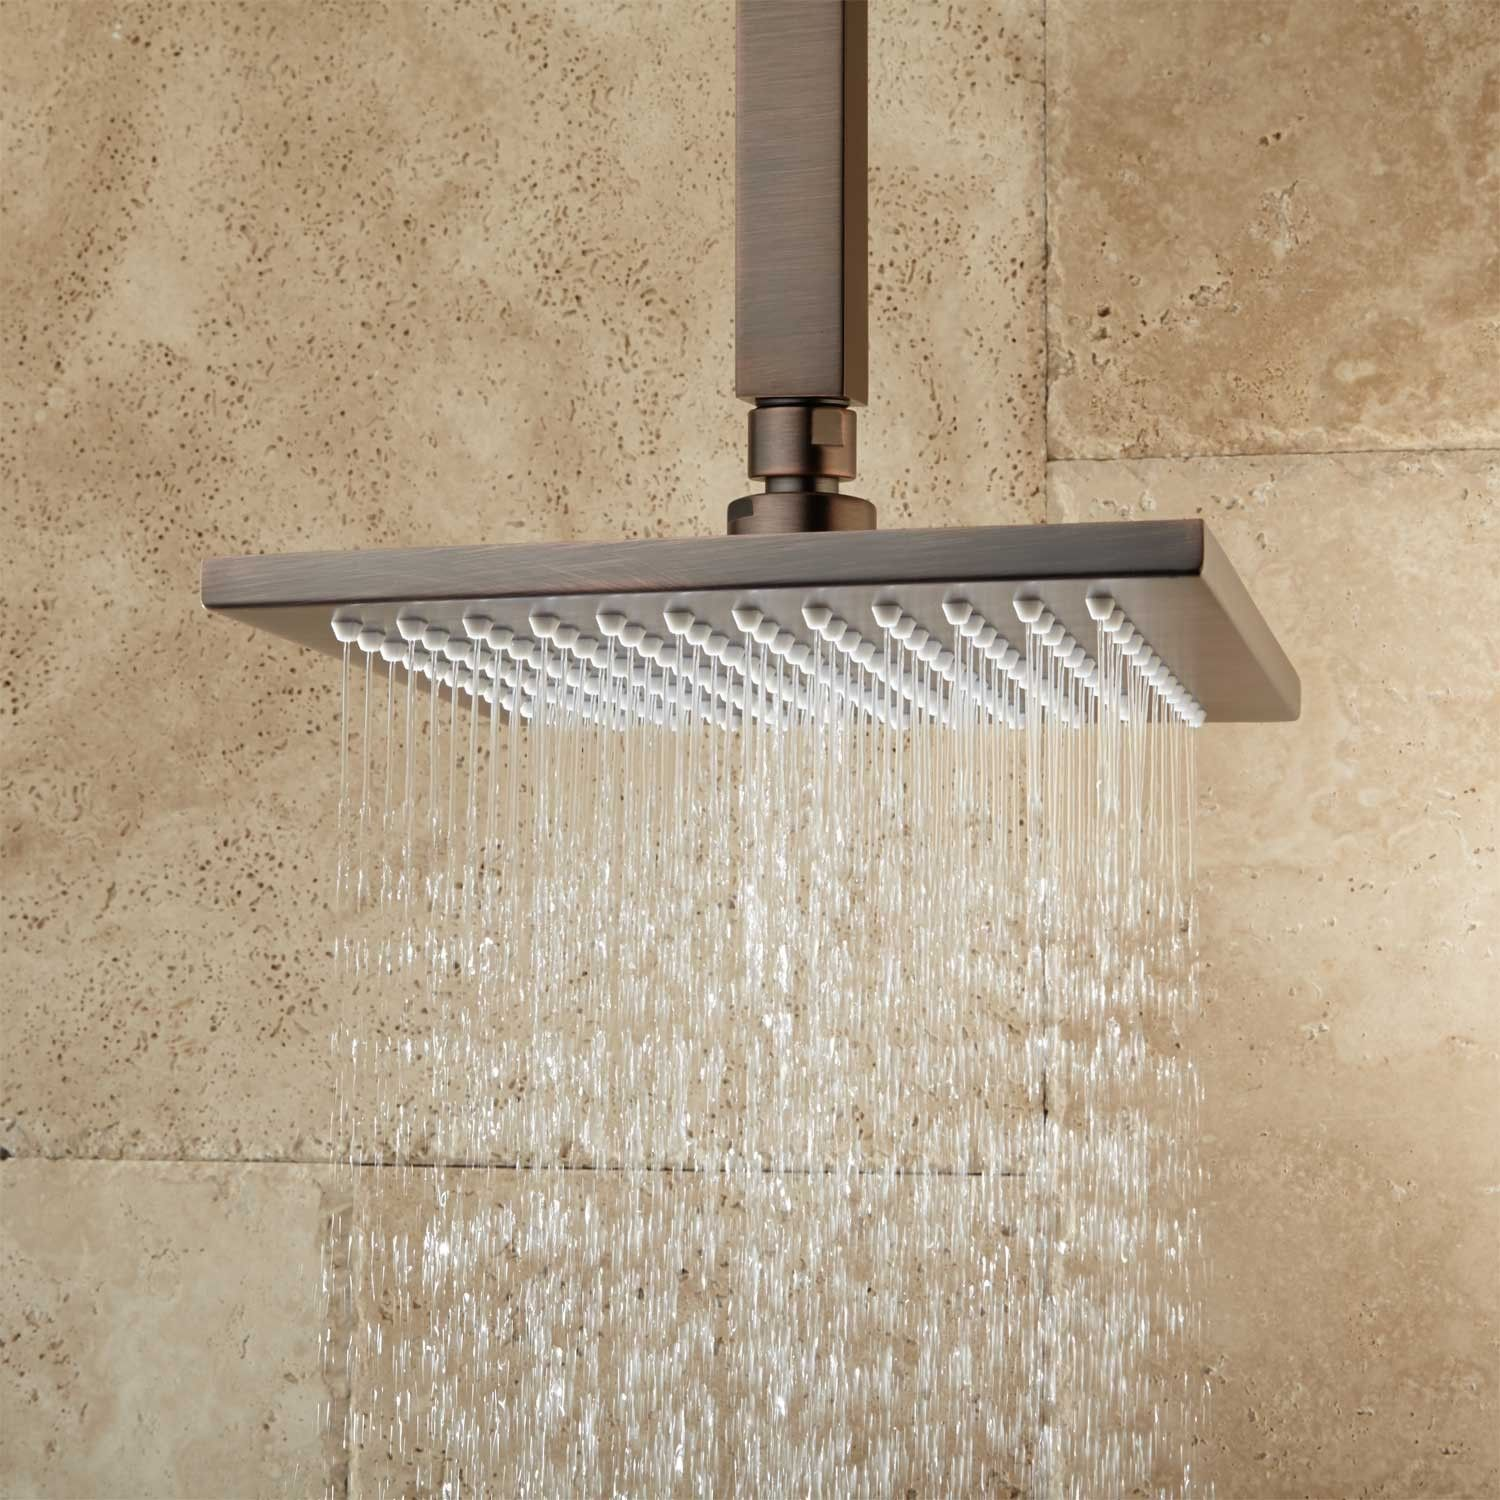 Devereaux Ceiling Mount Shower Head With Square Arm Rainfall